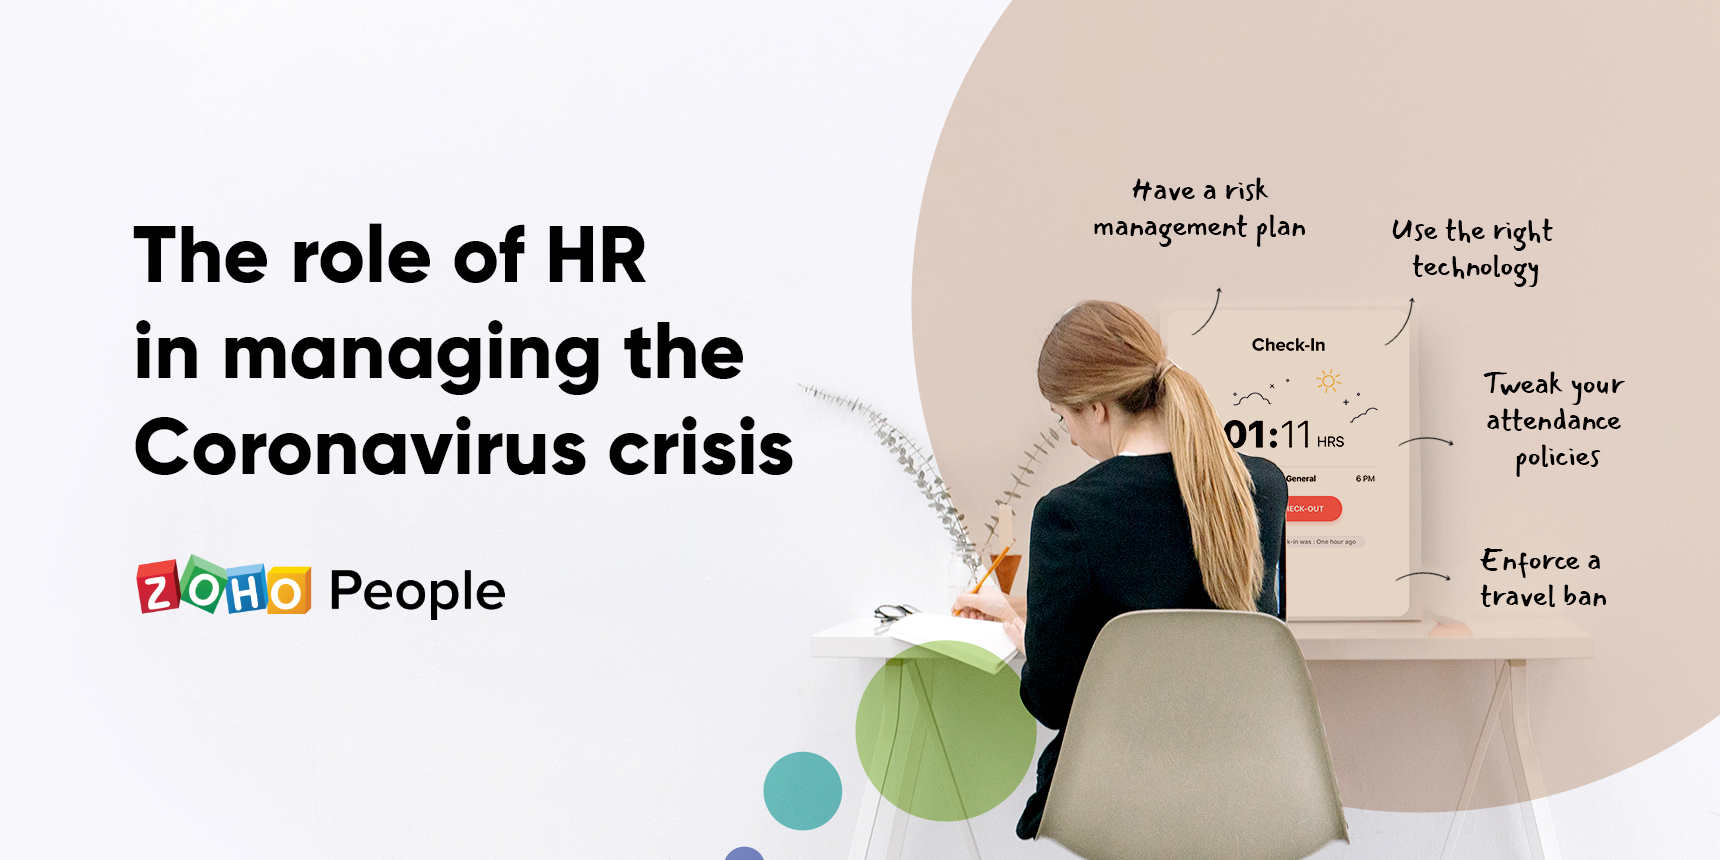 Managing employees during a crisis